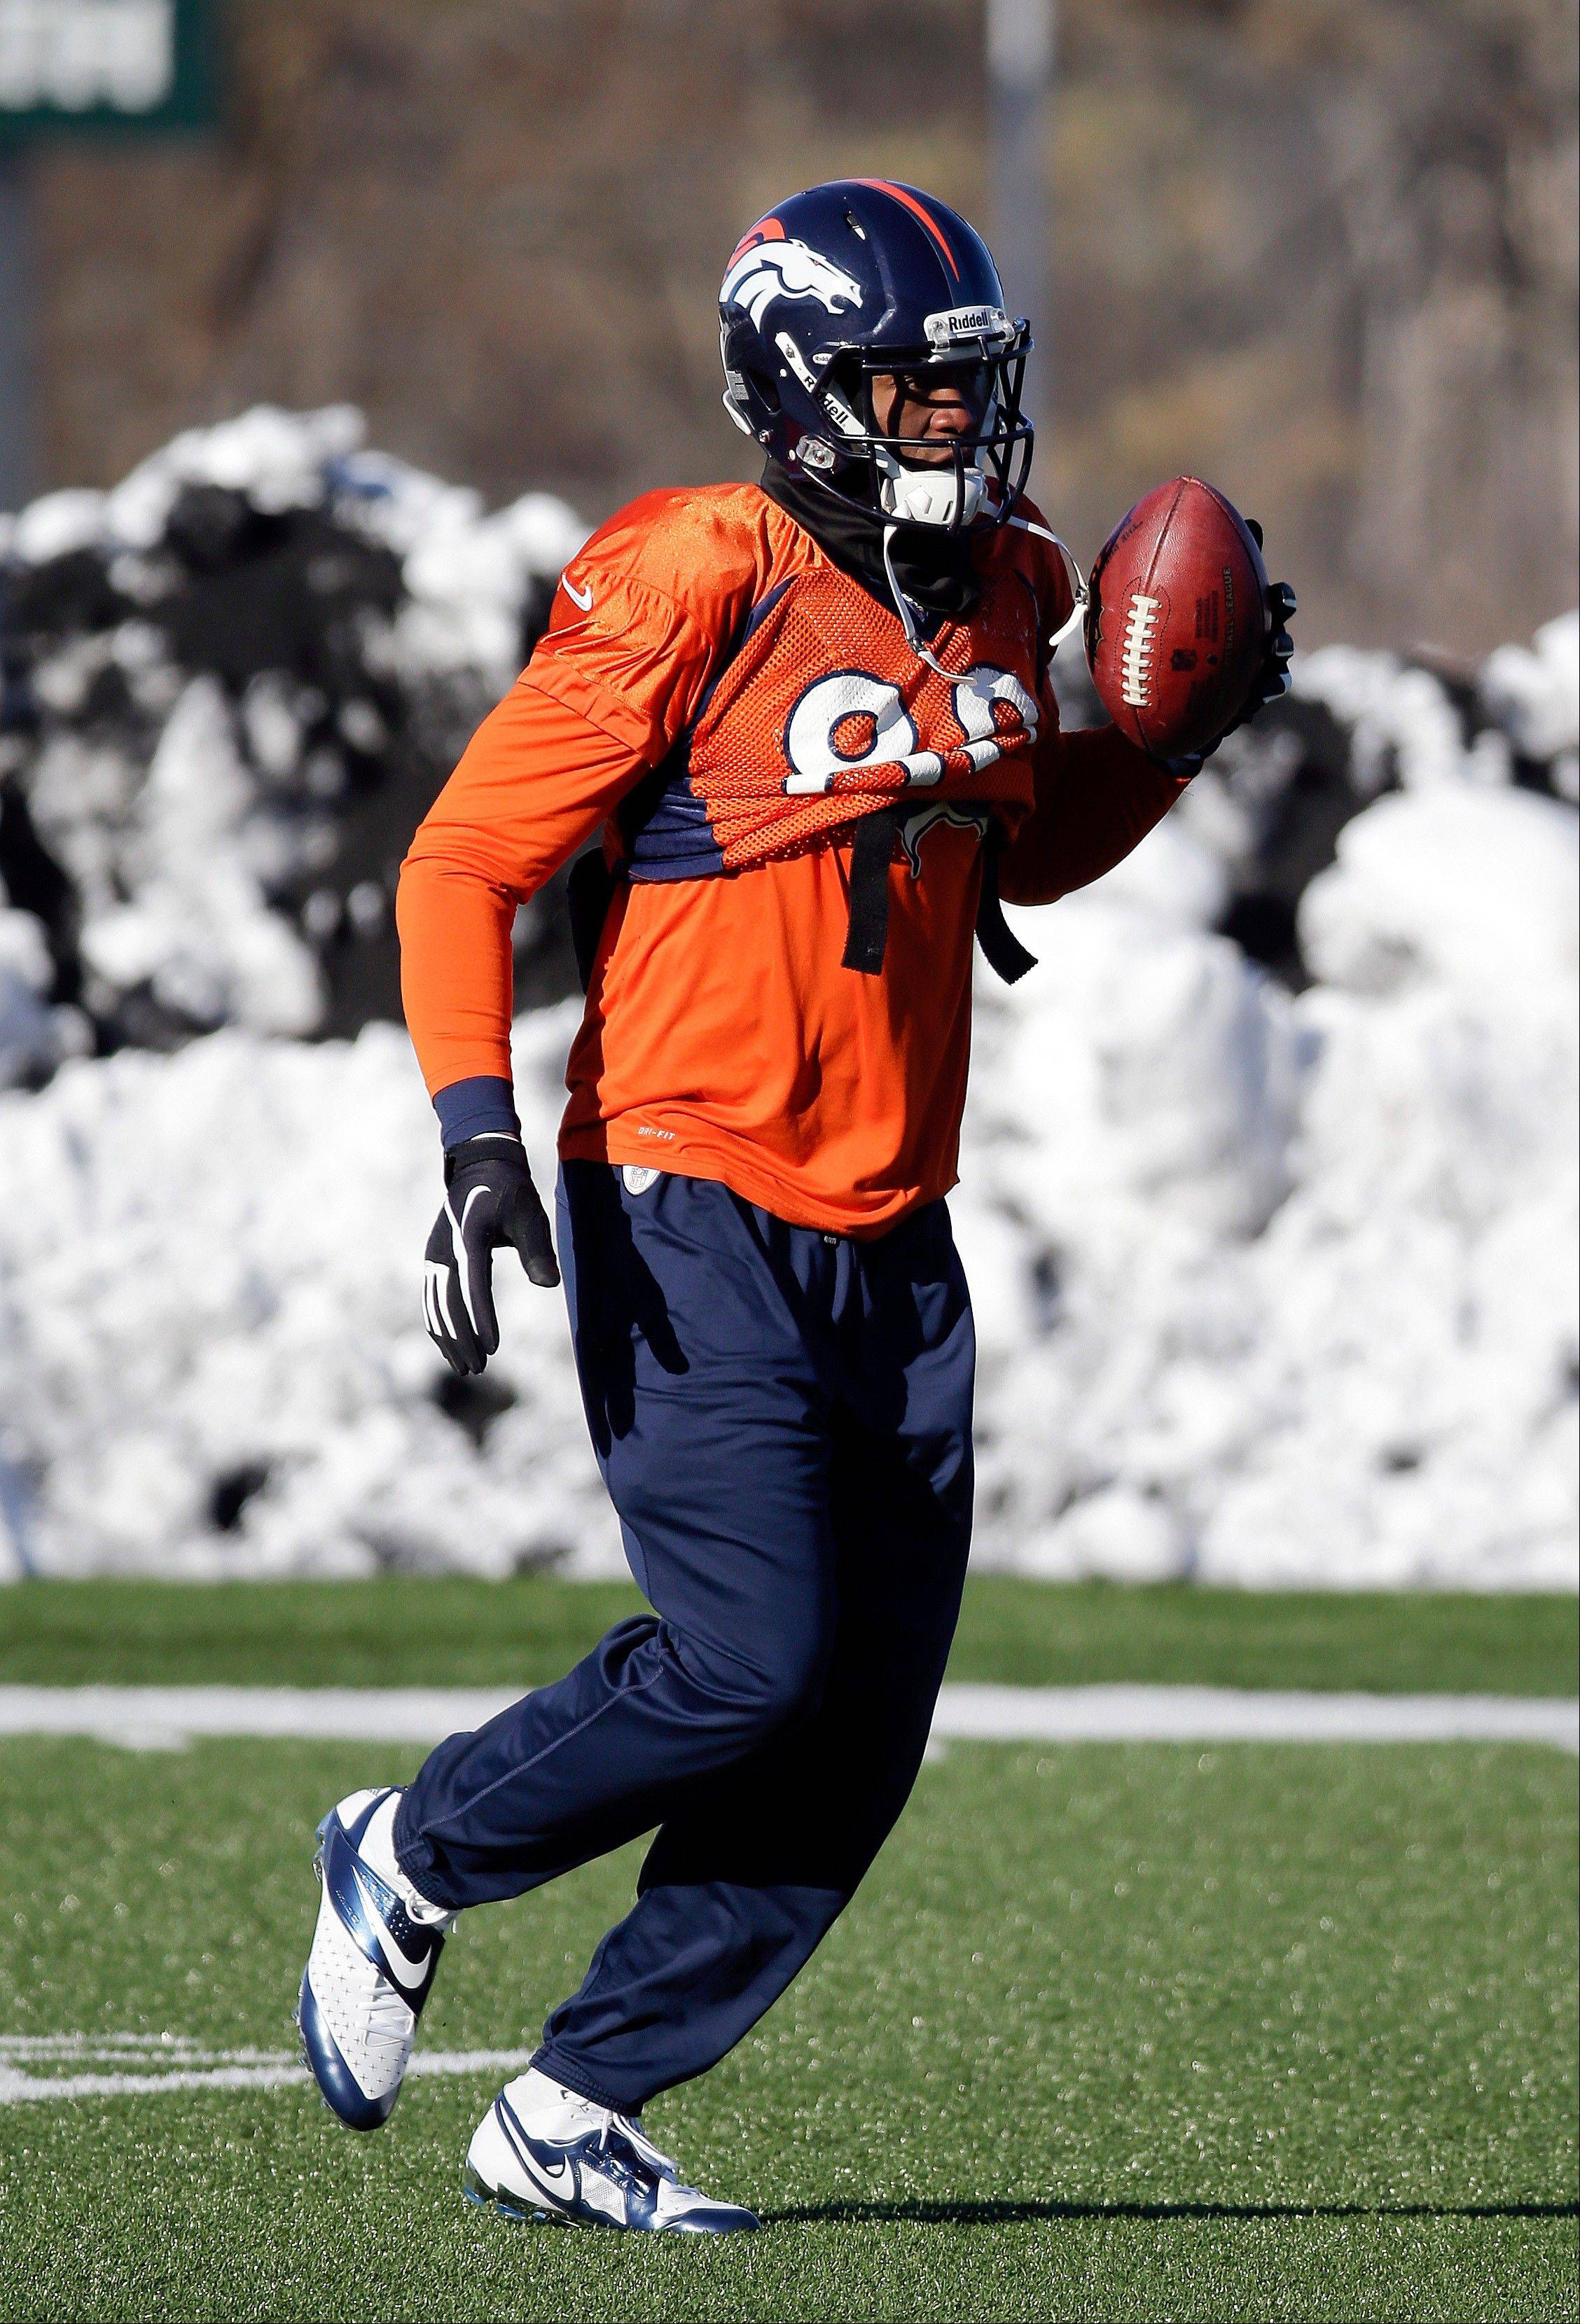 Denver Broncos tight end Julius Thomas runs a drill during practice Wednesday, Jan. 29, 2014, in Florham Park, N.J. The Broncos are scheduled to play the Seattle Seahawks in the NFL Super Bowl XLVIII football game Sunday, Feb. 2, in East Rutherford, N.J.